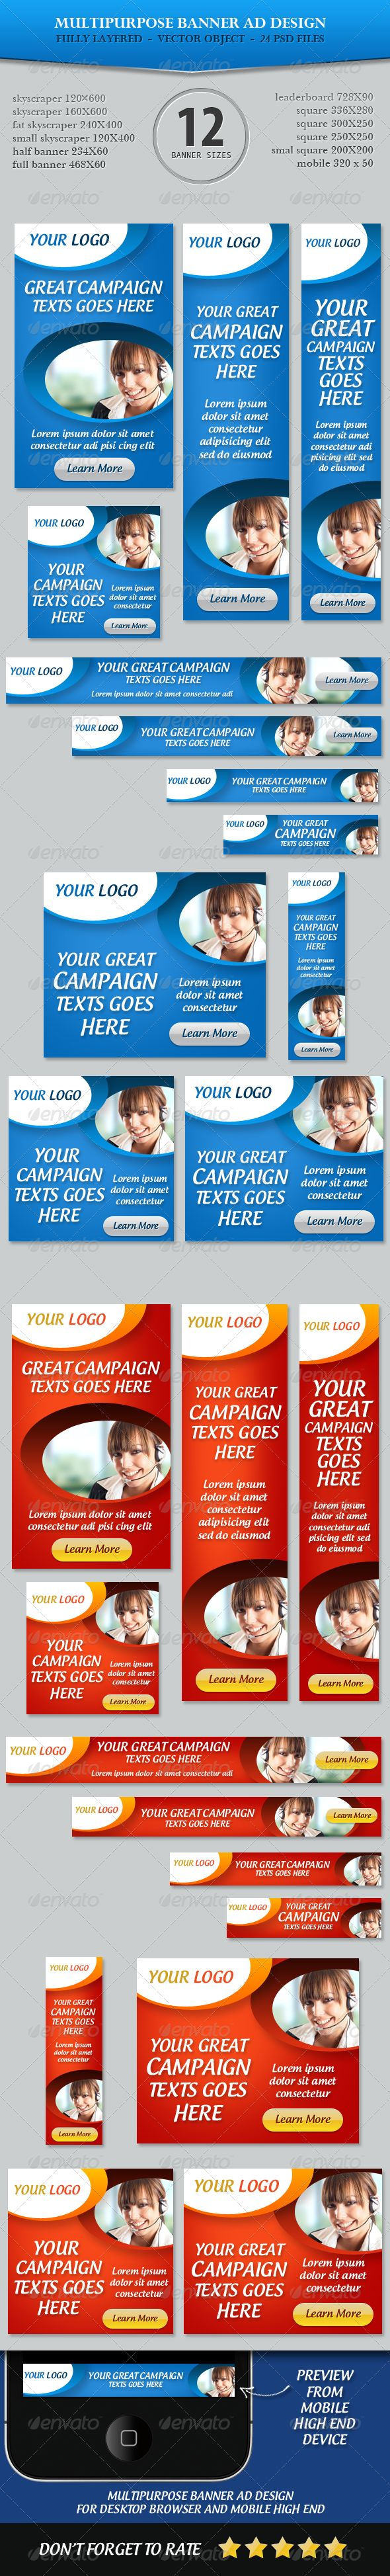 Multipurpose Banner ad Design  #GraphicRiver         Multipurpose Banner ad Design:   Web Banner ad sizes:   skyscraper 120×600   skyscraper 160X600   fat skyscraper 240X400   small skyscraper 120X400  half banner 234X60  full banner 468X60  leaderboard 728X90  square 336X280  square 300X250  square 250X250   small square 200X200  mobile leaderboard 320X50   Cool Banners                                                                         Facebook Time Line Cover…